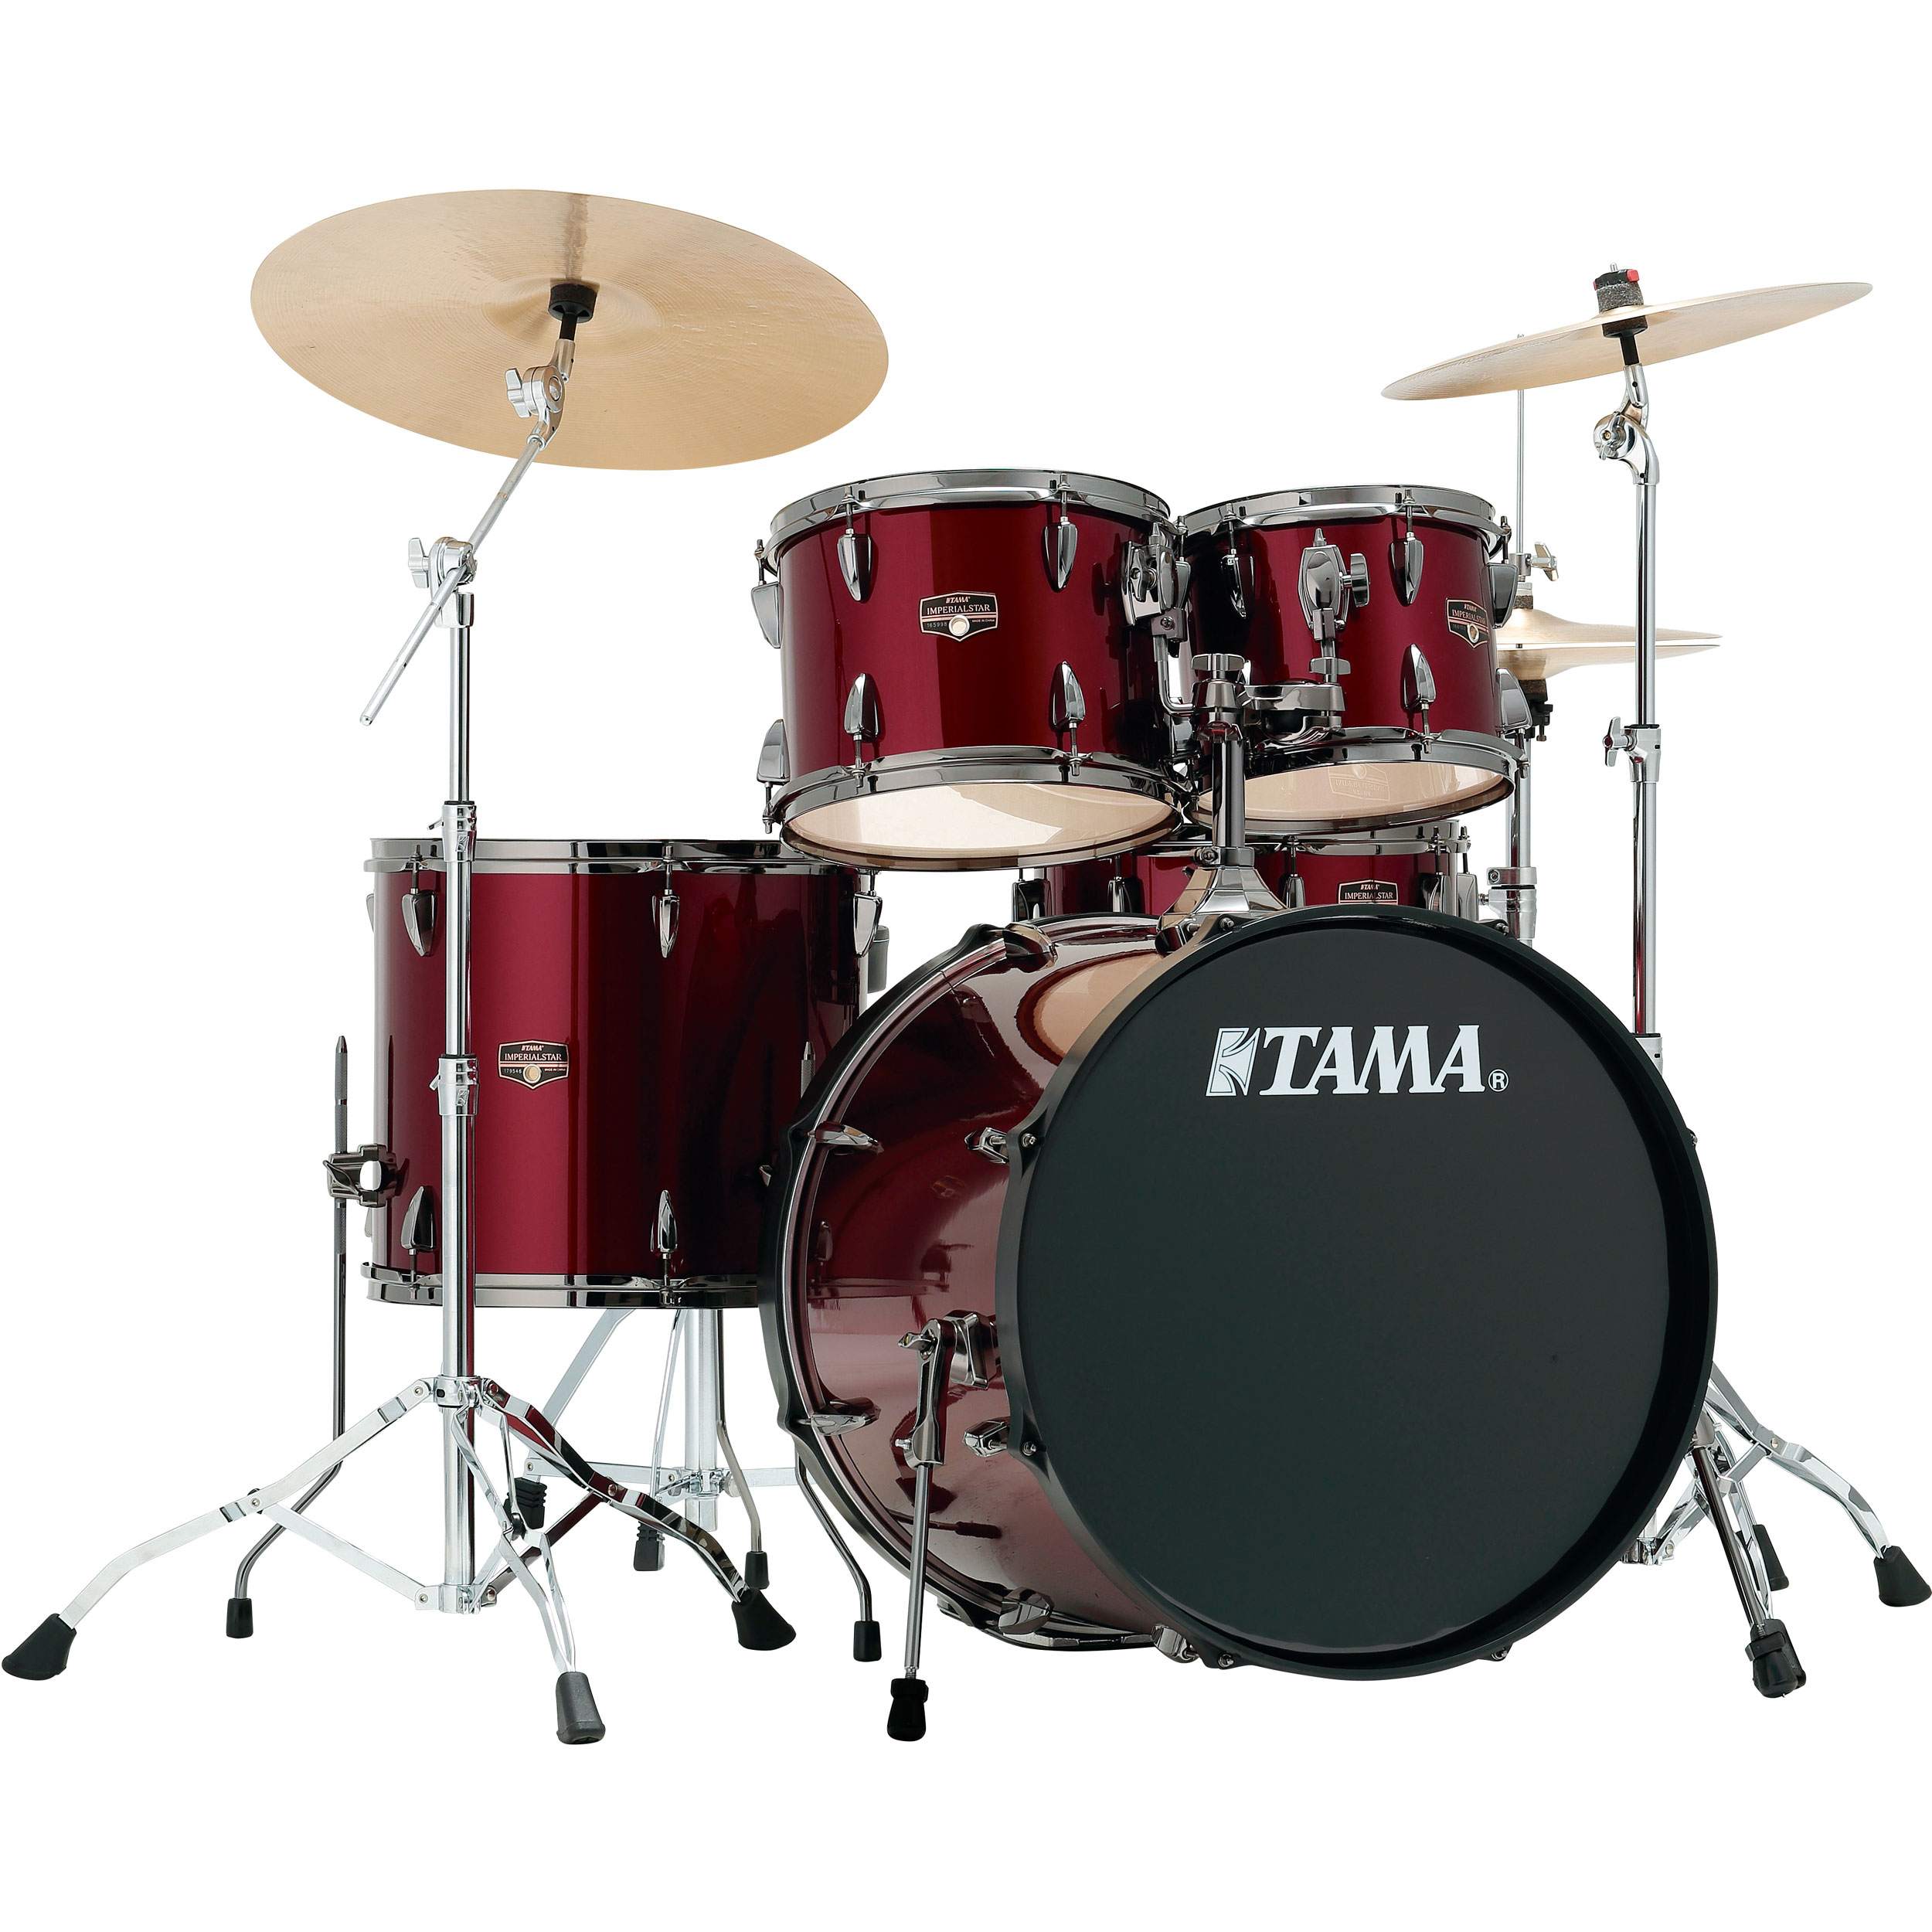 tama imperialstar 5 piece drum set with black nickel hardware and cymbals ip52nbc. Black Bedroom Furniture Sets. Home Design Ideas